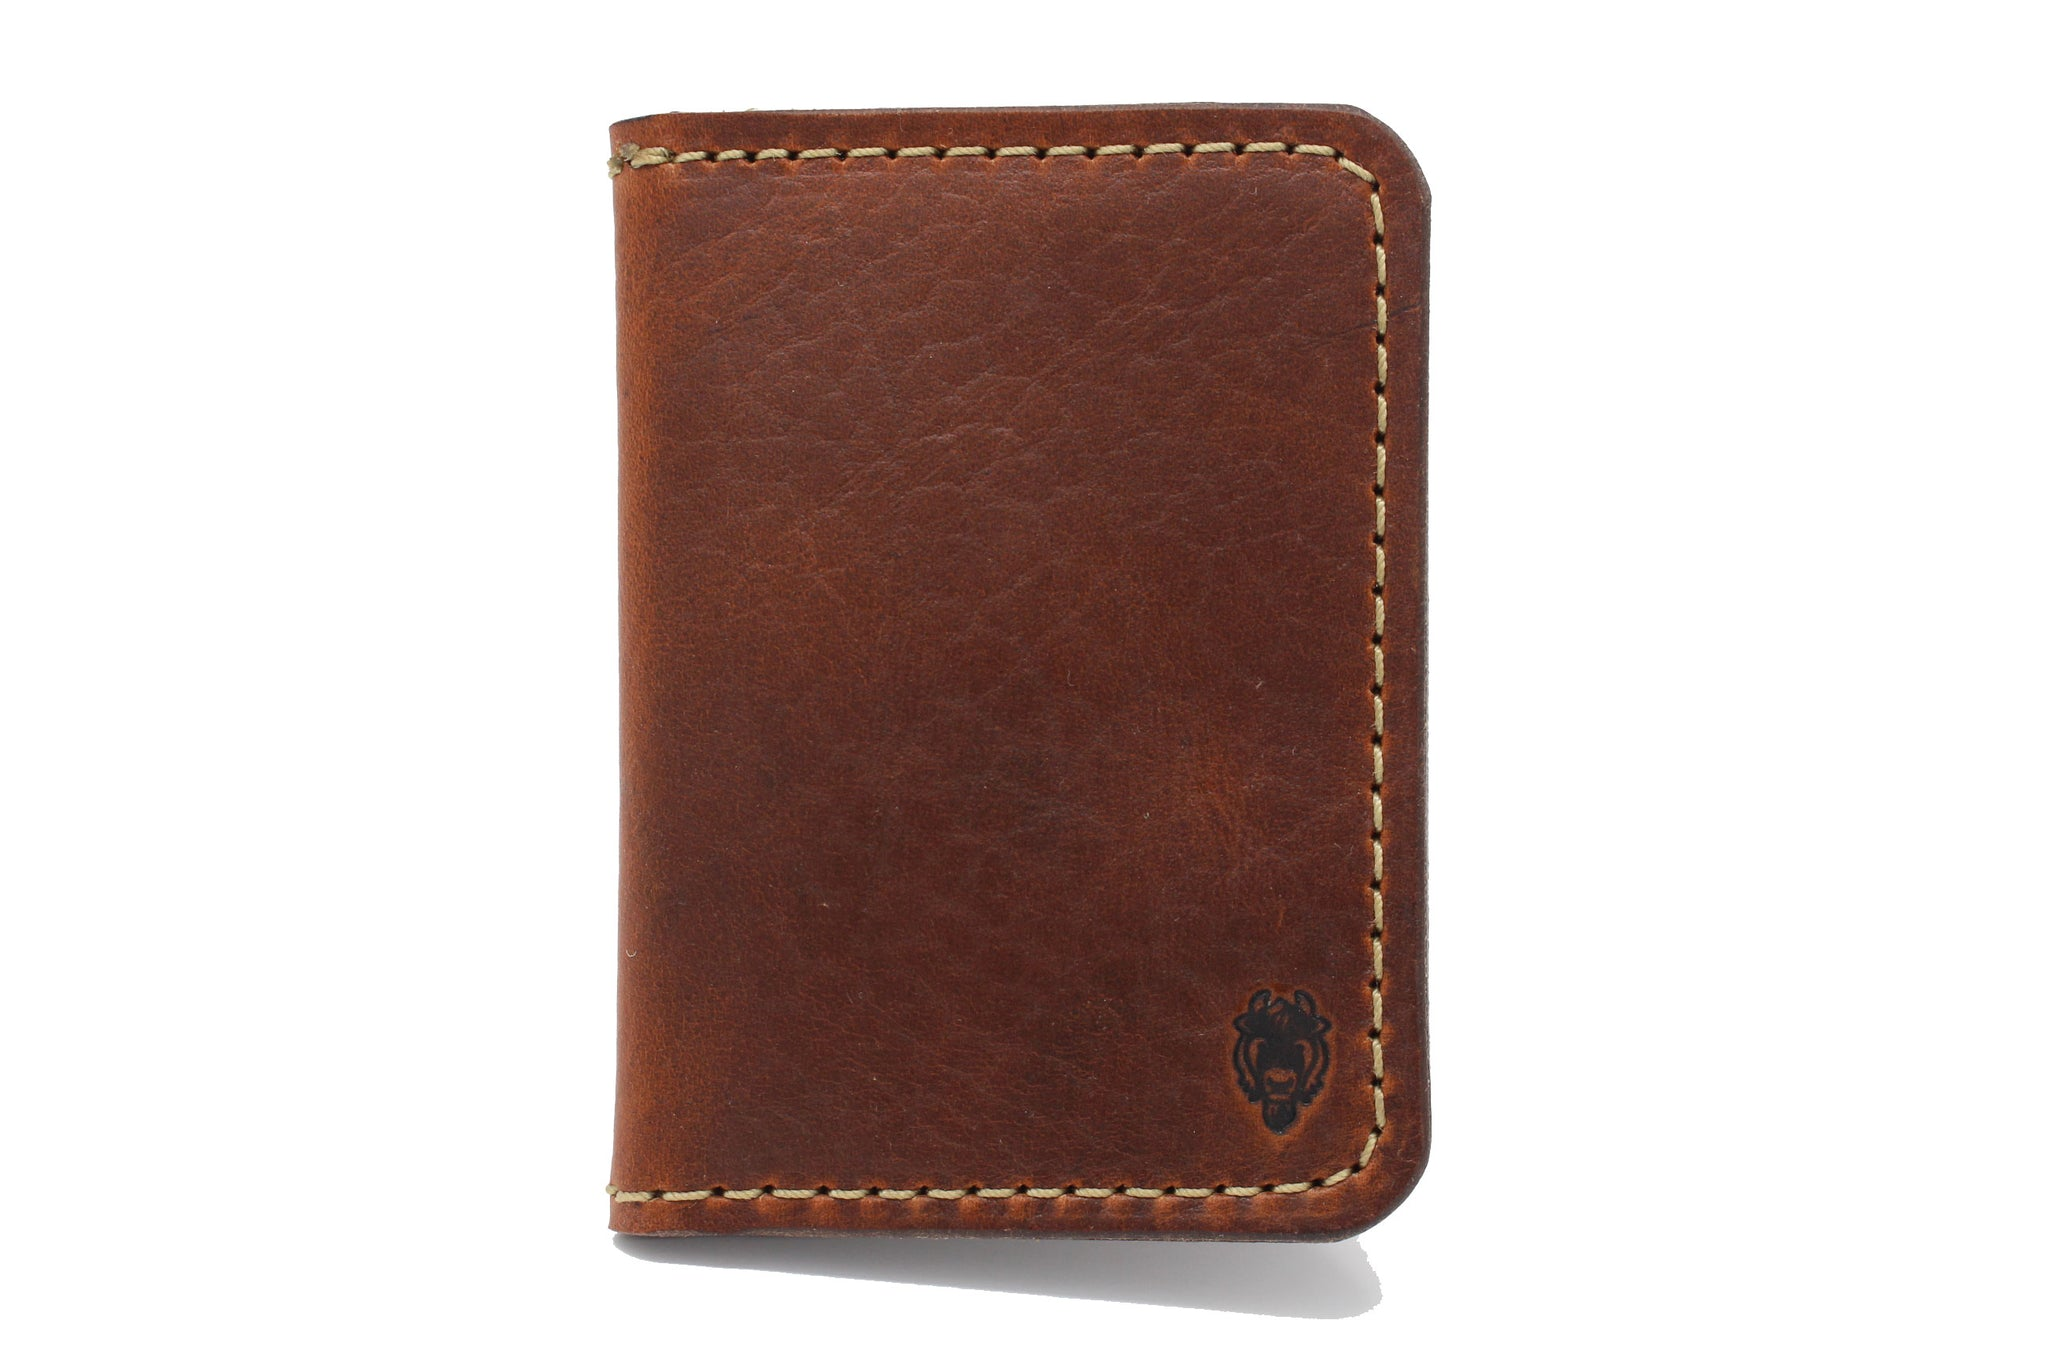 Bison Bifold Wallet - Sienna Brown